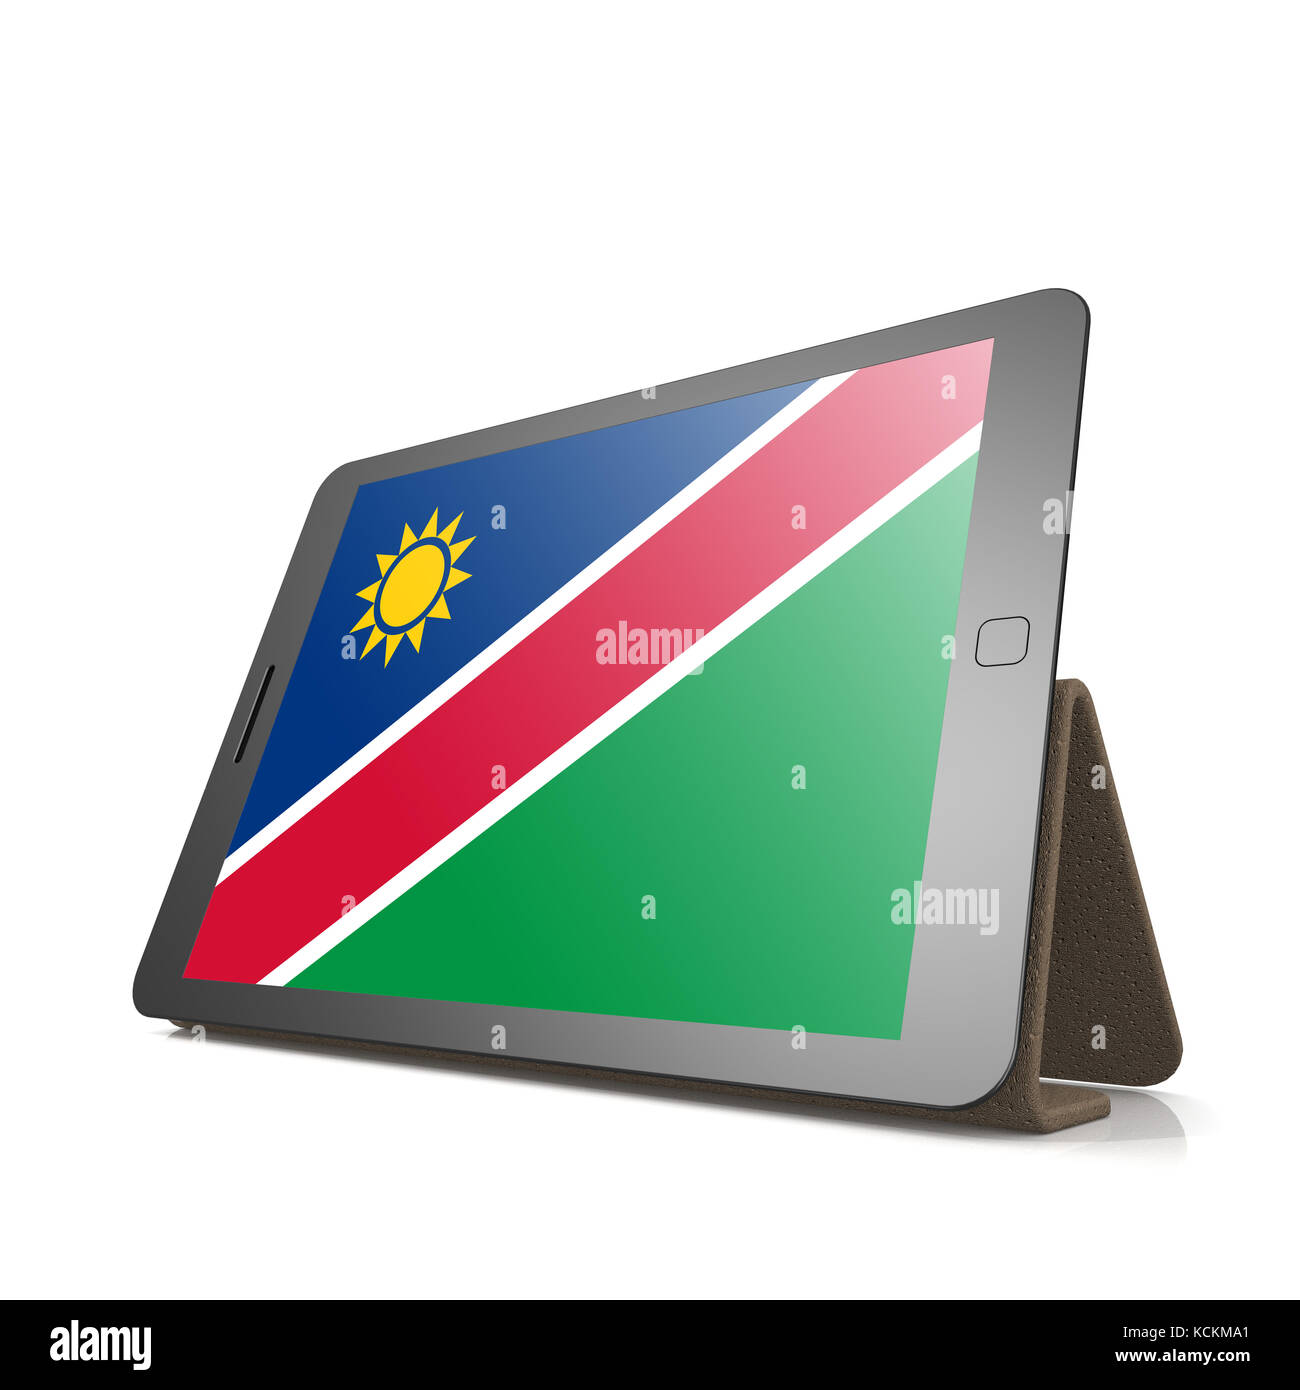 Tablet with Namibia flag image with hi-res rendered artwork that could be used for any graphic design. - Stock Image